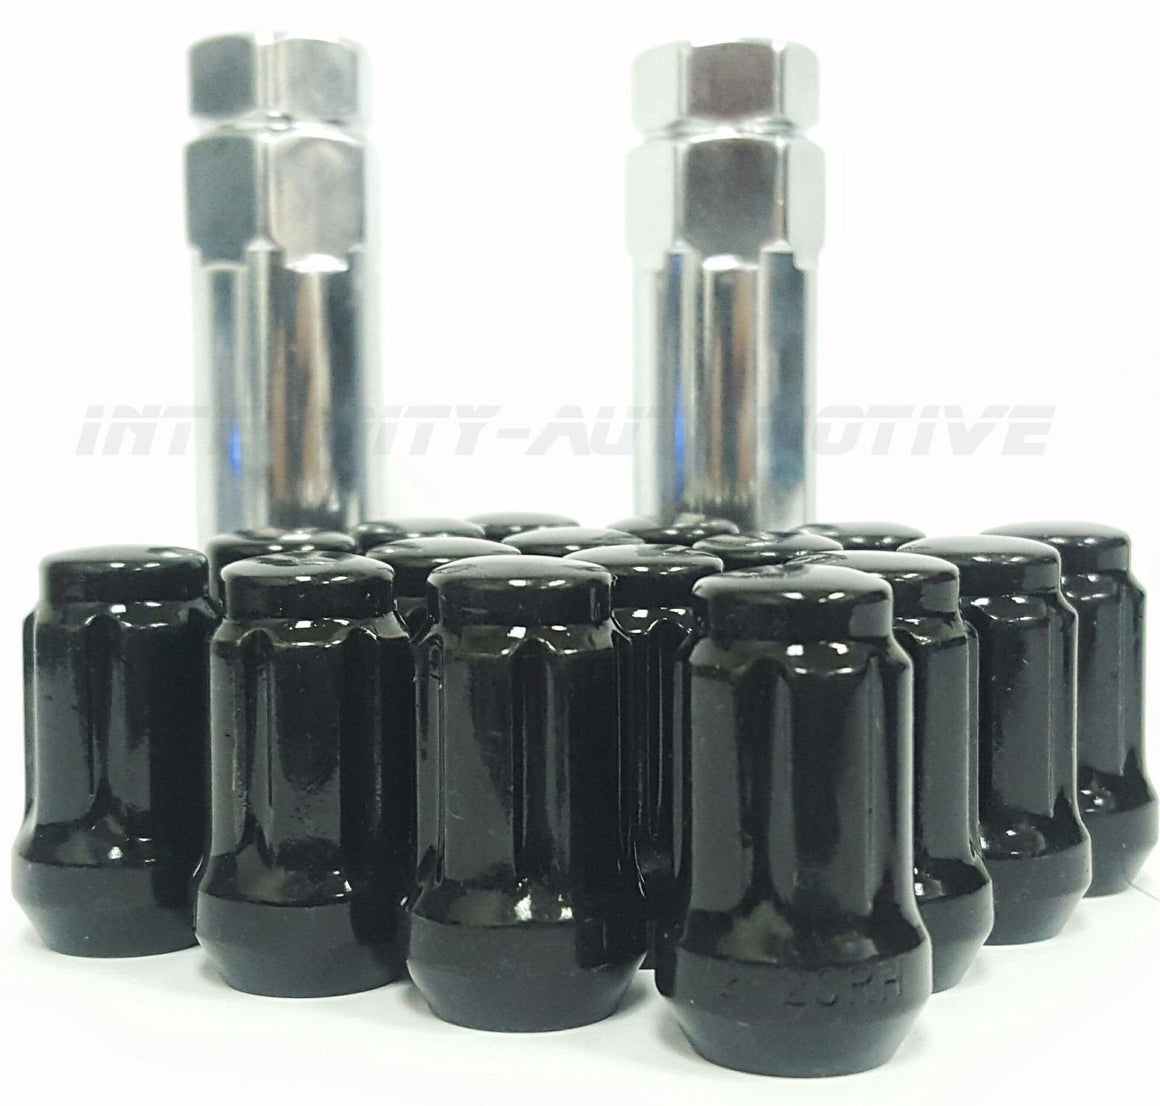 16 Black Spline Racing Lug Nuts 12x1.25 Fits All Nissan 240sx, S13, S14, S15 300zx, 280z